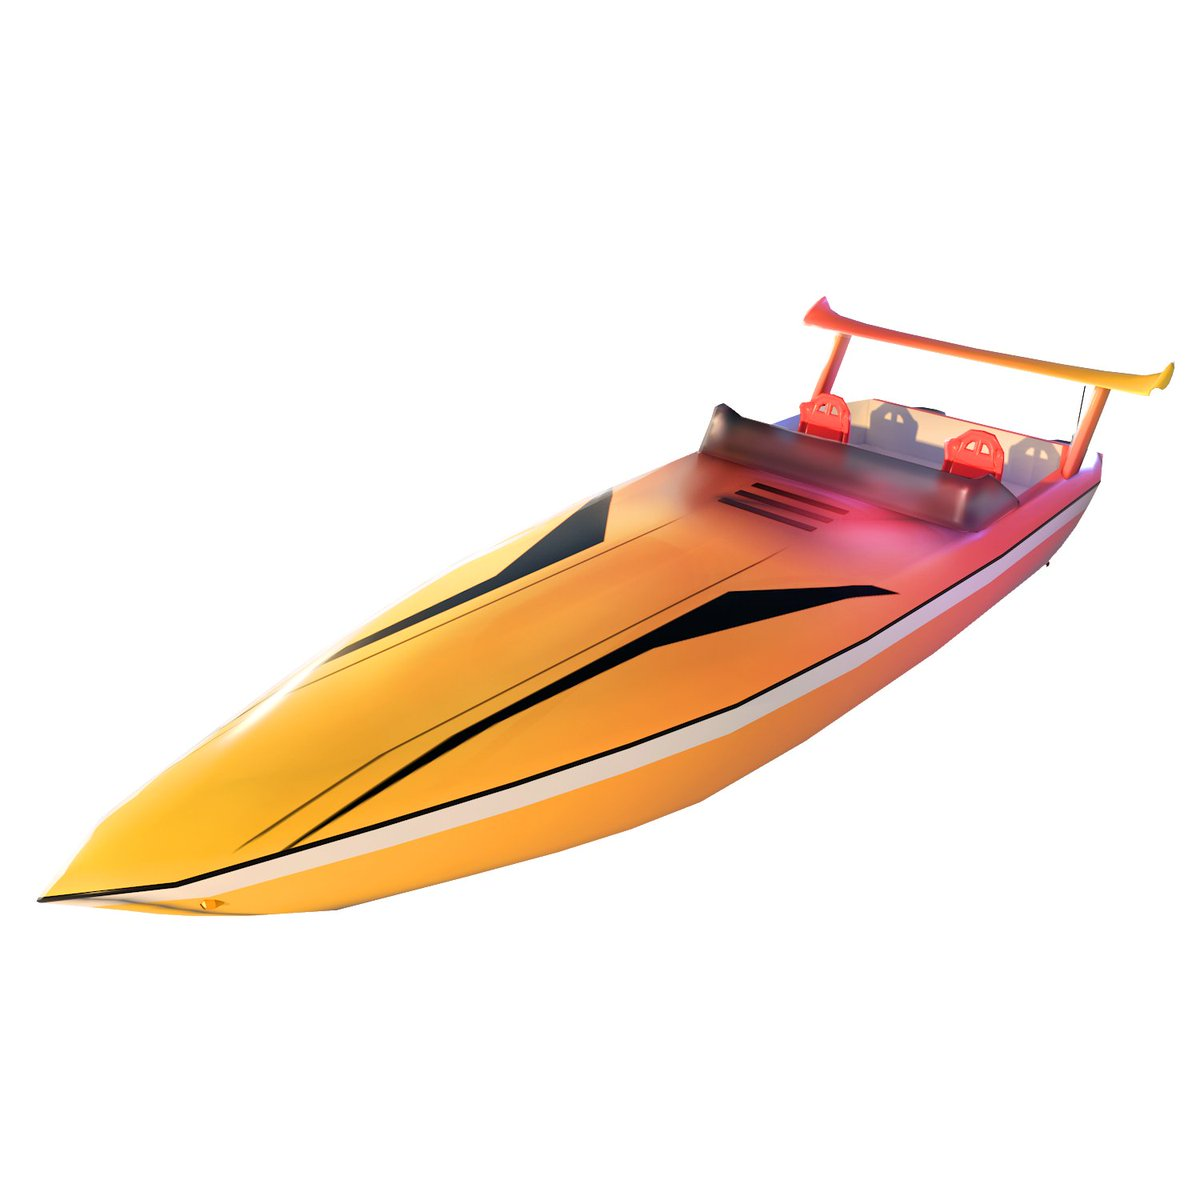 Roblox Sharkbite Duck Boat Toy Uk Simon On Twitter It S Here Introducing The Raptor Speed Boat Receive The Brand New All Exclusive Boats With The Sharkbite Roblox Toys When You Redeem The Toy Code Online You Will